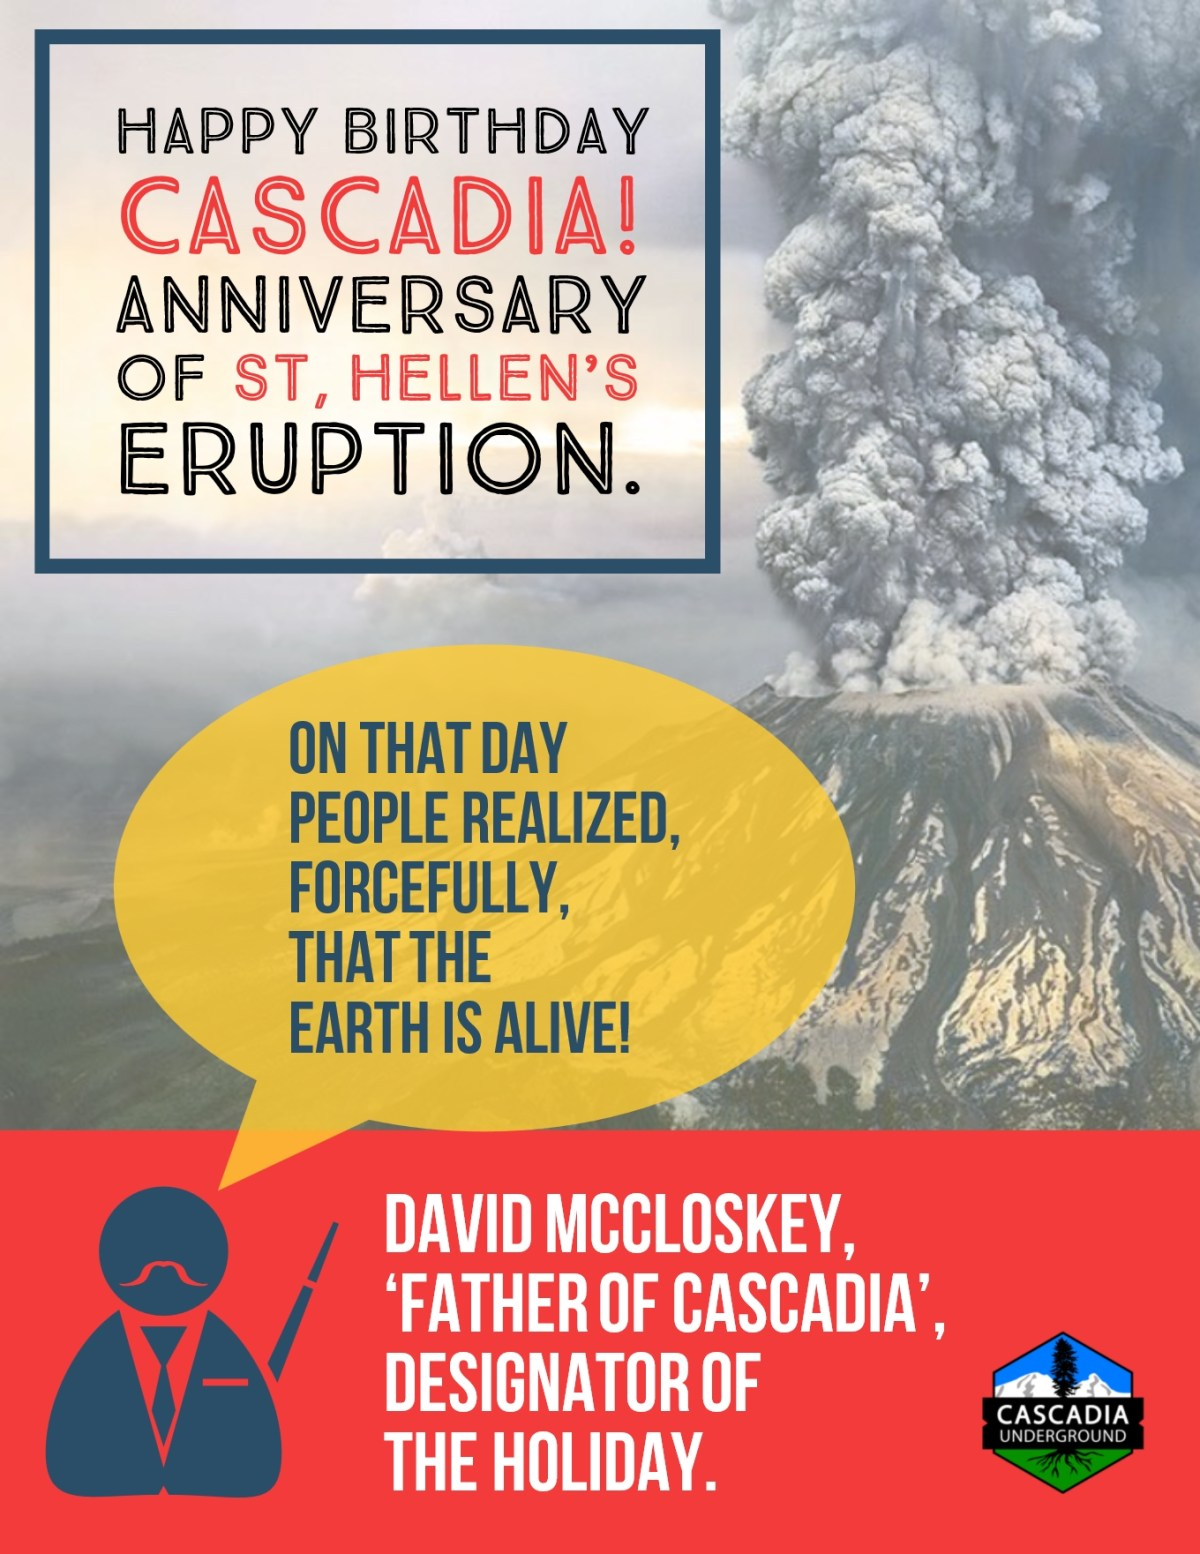 A colorful poster chronicles the creation of Cascadia day by David McCloskey to commemorate the erruption of Mt St Helends on May 18th 1980.